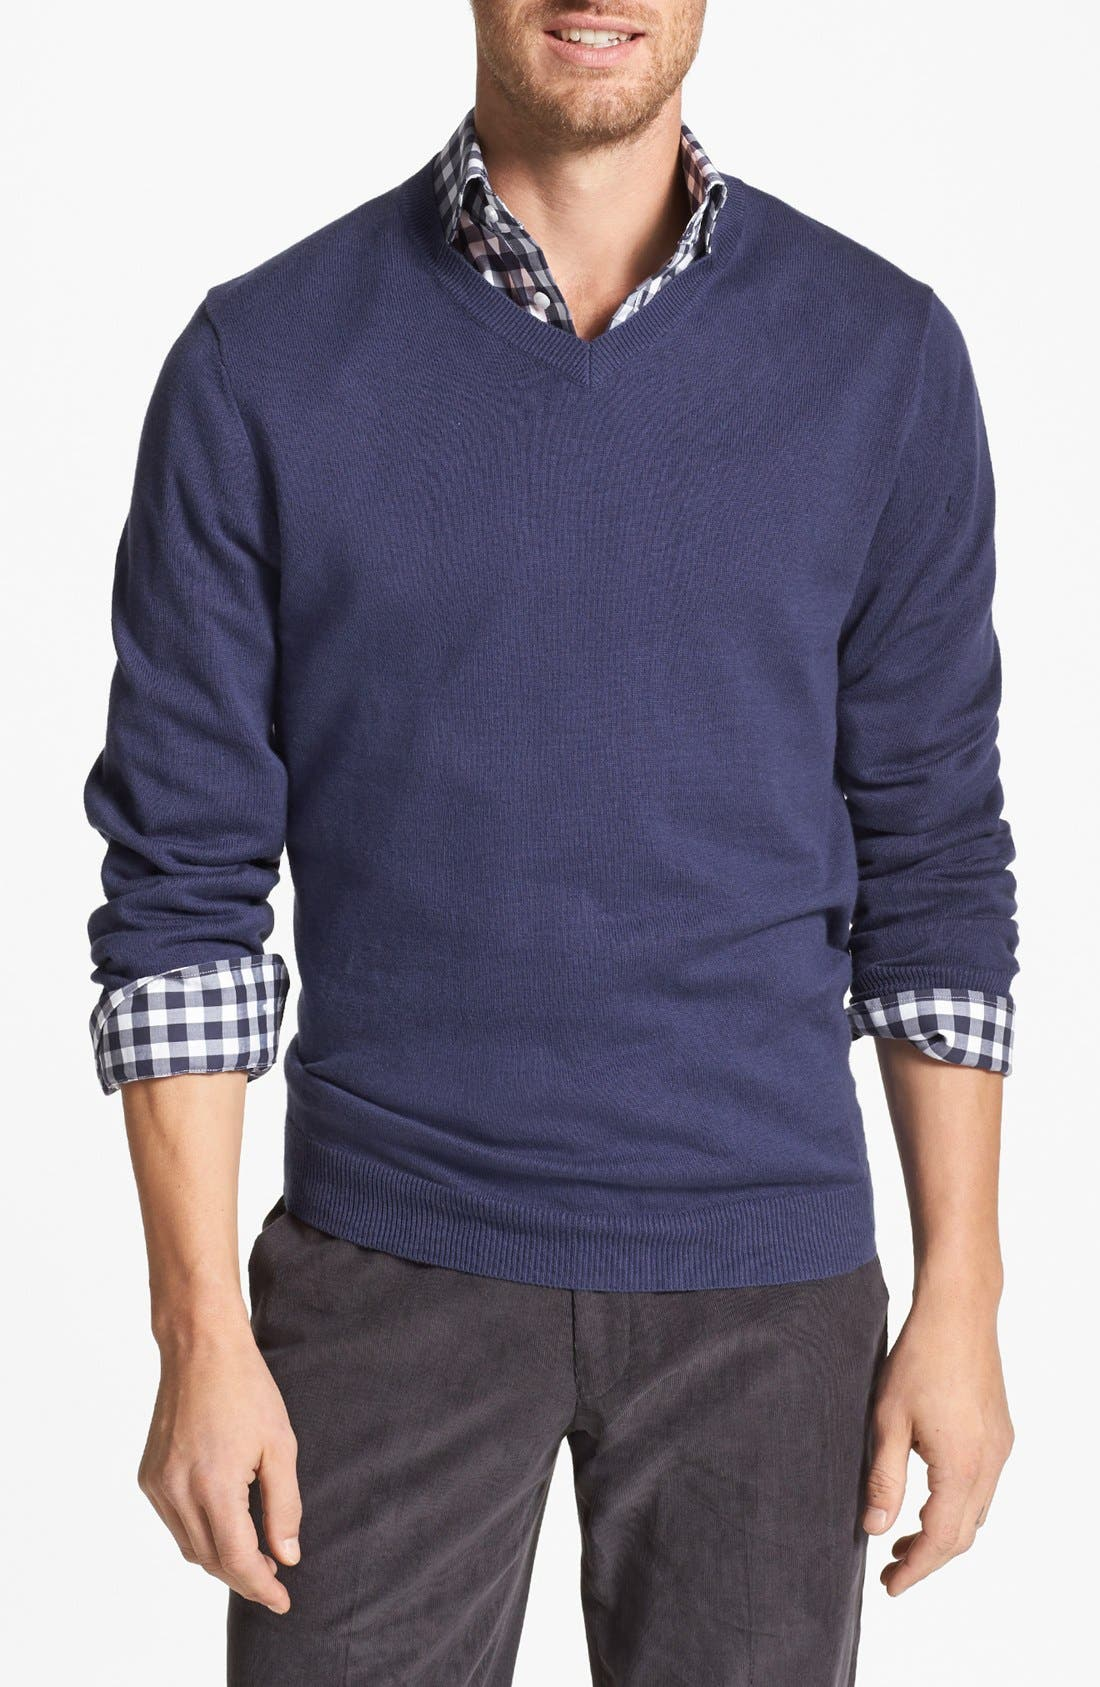 Main Image - Wallin & Bros. Trim Fit V-Neck Cotton & Cashmere Sweater